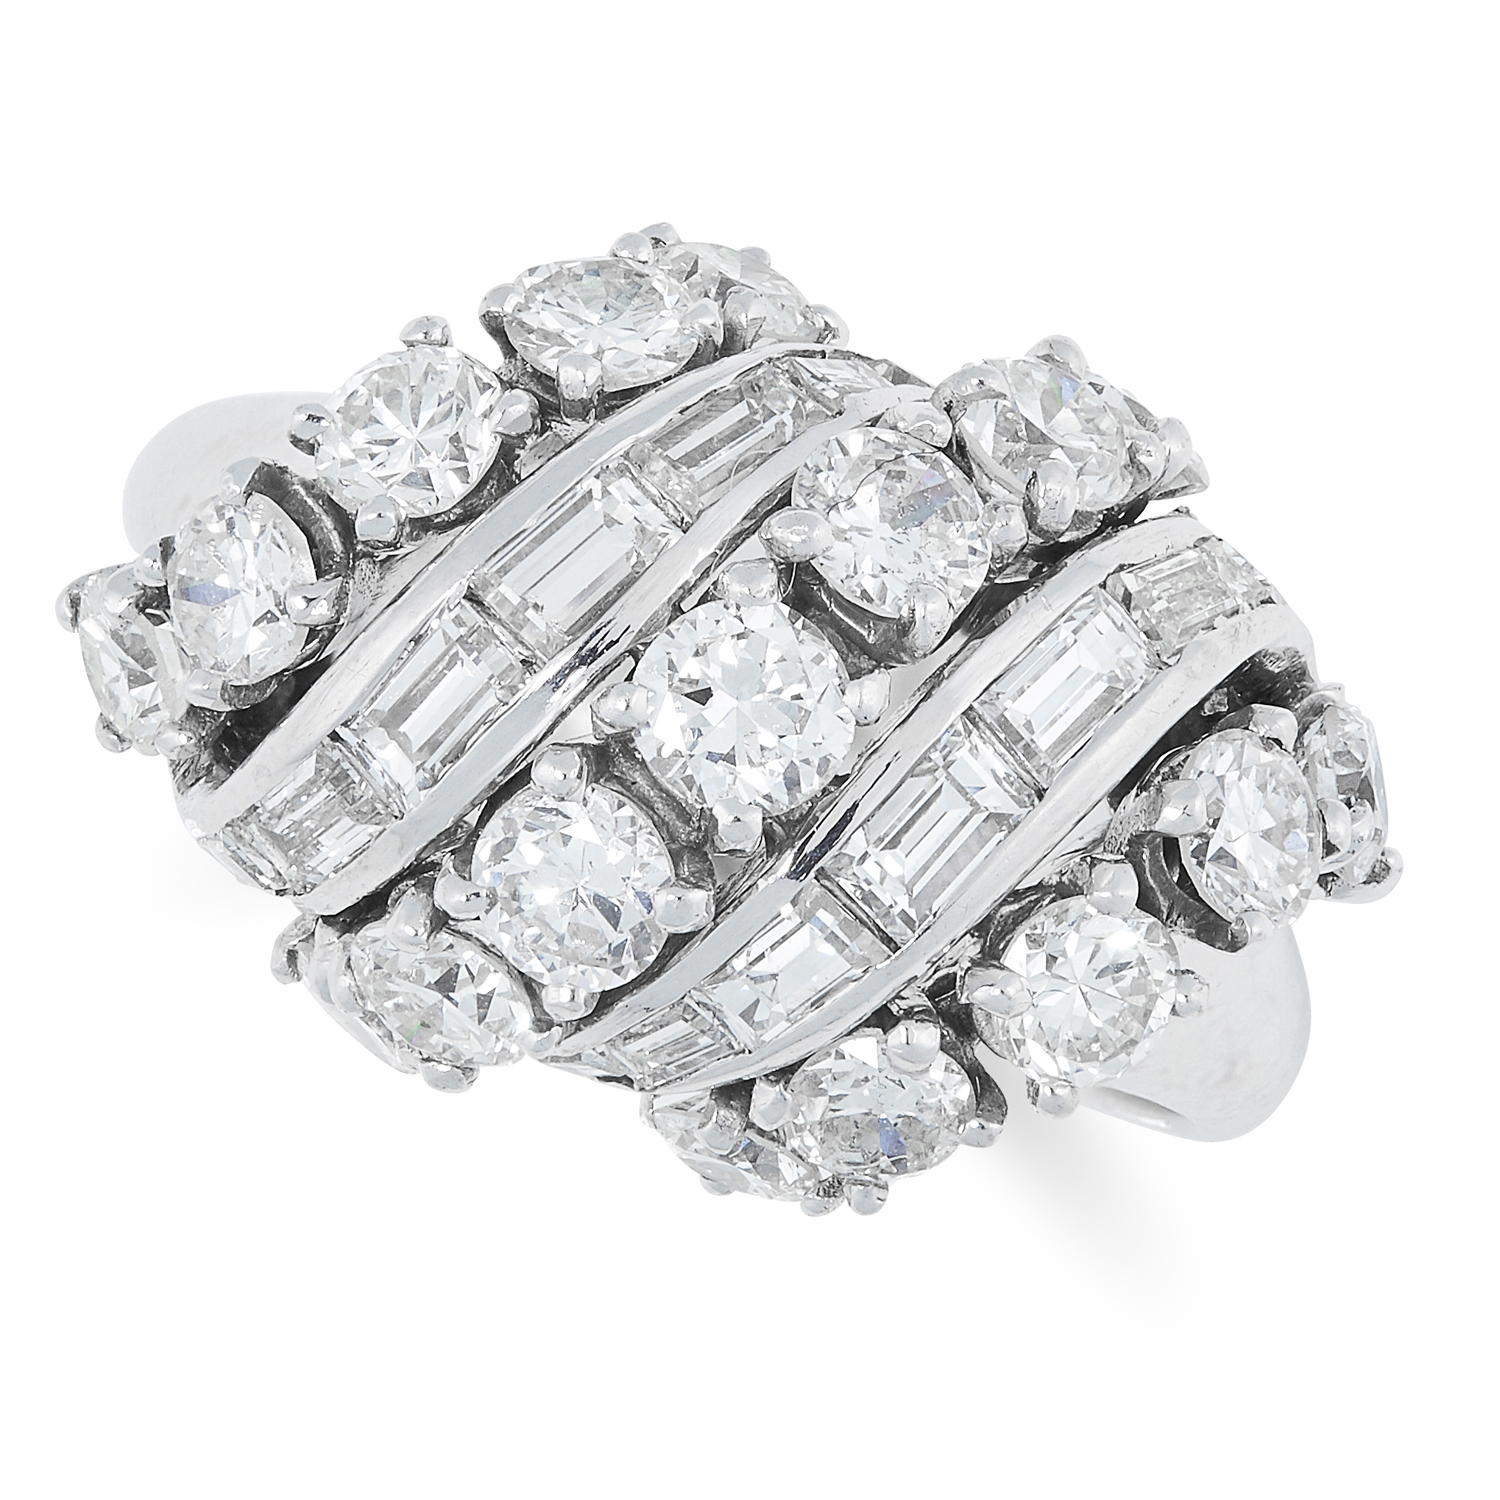 A DIAMOND DRESS RING, VAN CLEEF & ARPELS set with round brilliant and baguette cut diamonds,